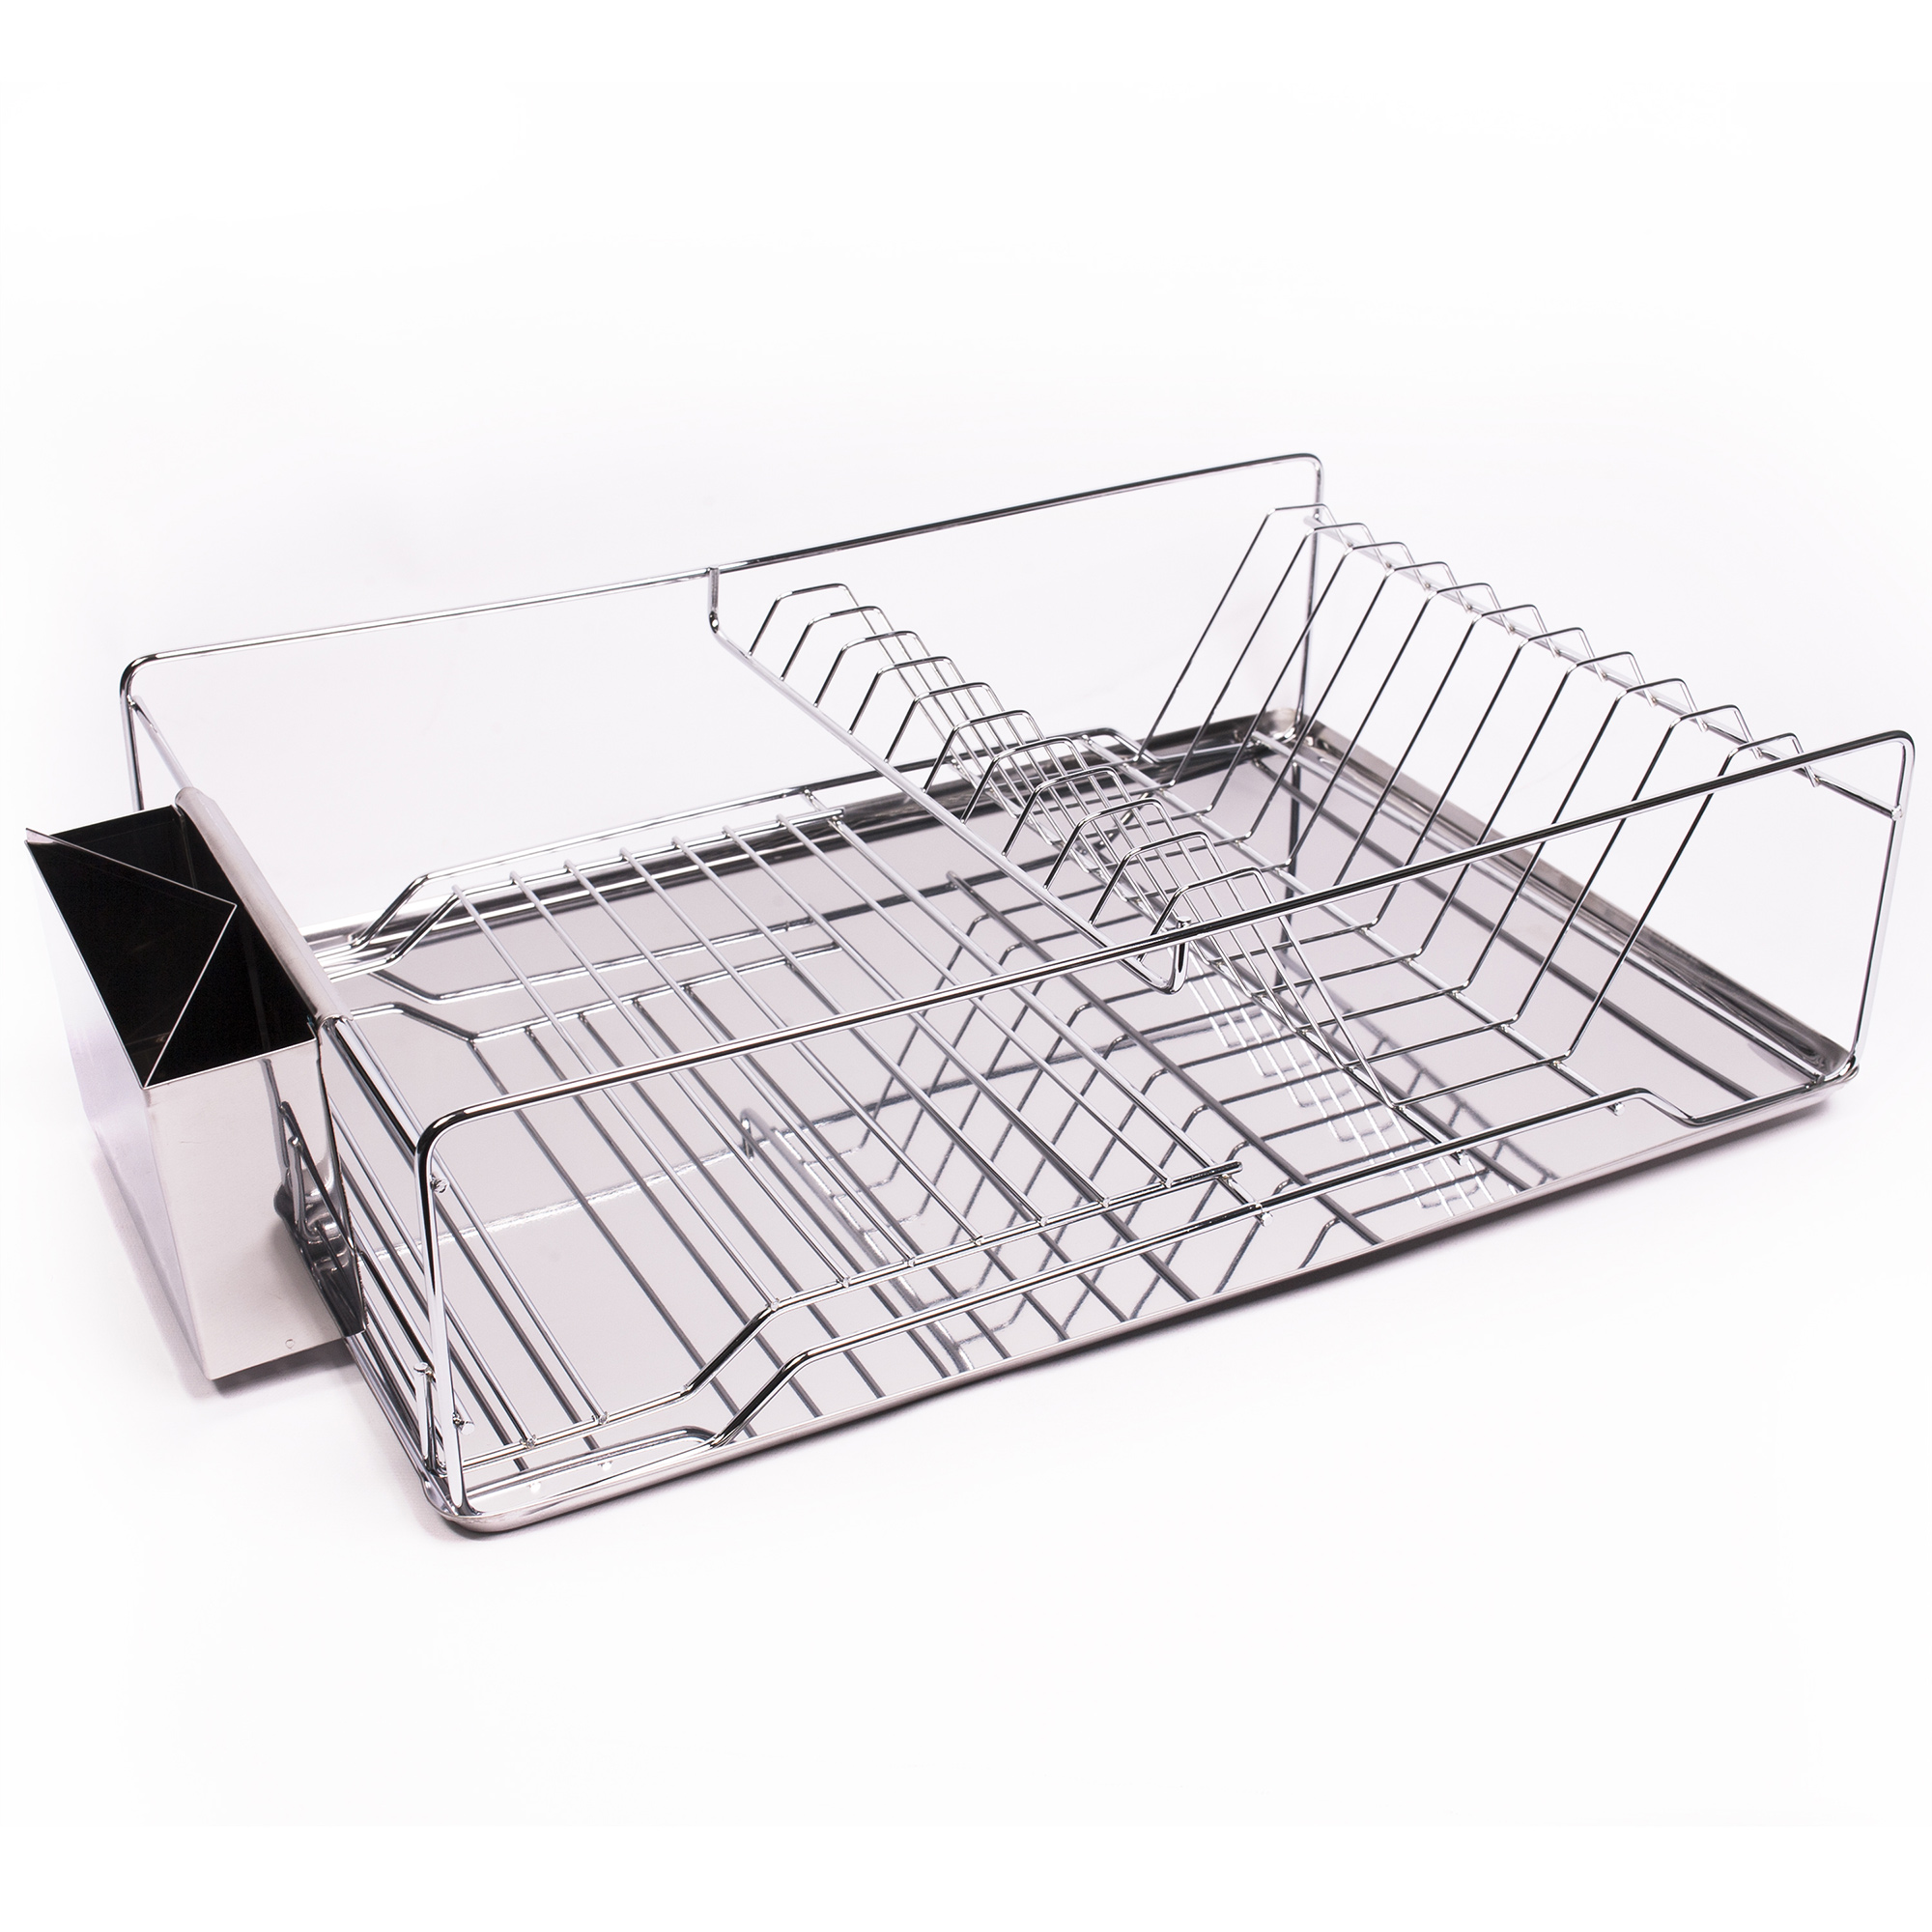 Genial Details About Home Basics 3 Piece Stainless Steel U0026 Chrome Kitchen Sink  Dish Drainer Set